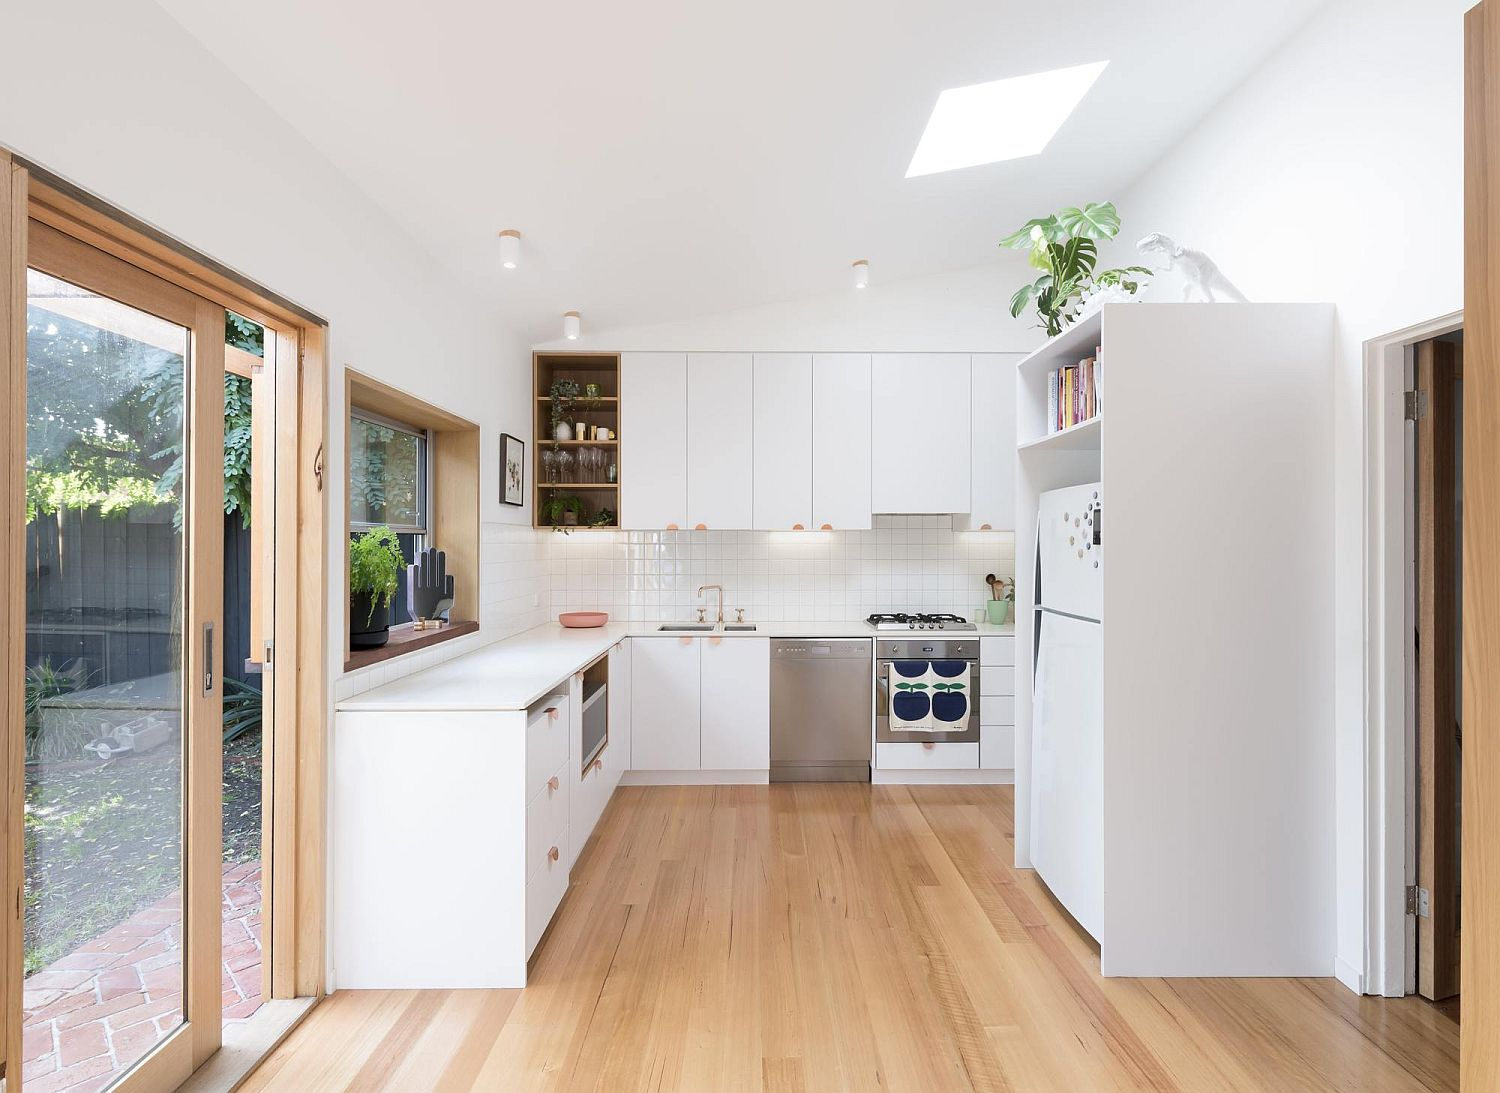 Kitchen in white with skylight